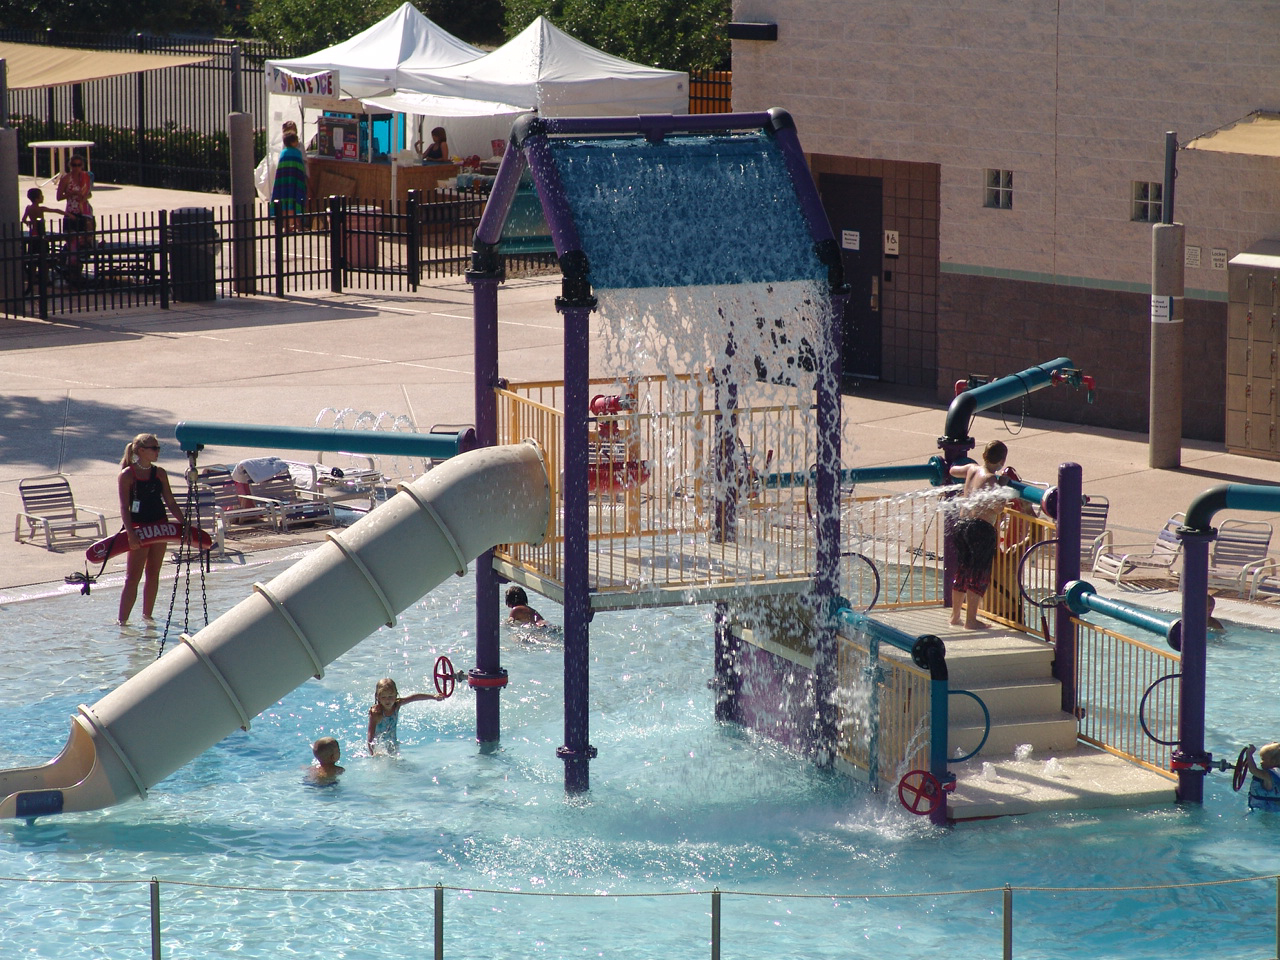 Southeast valley recreational centers in gilbert and - Free public swimming pools near me ...